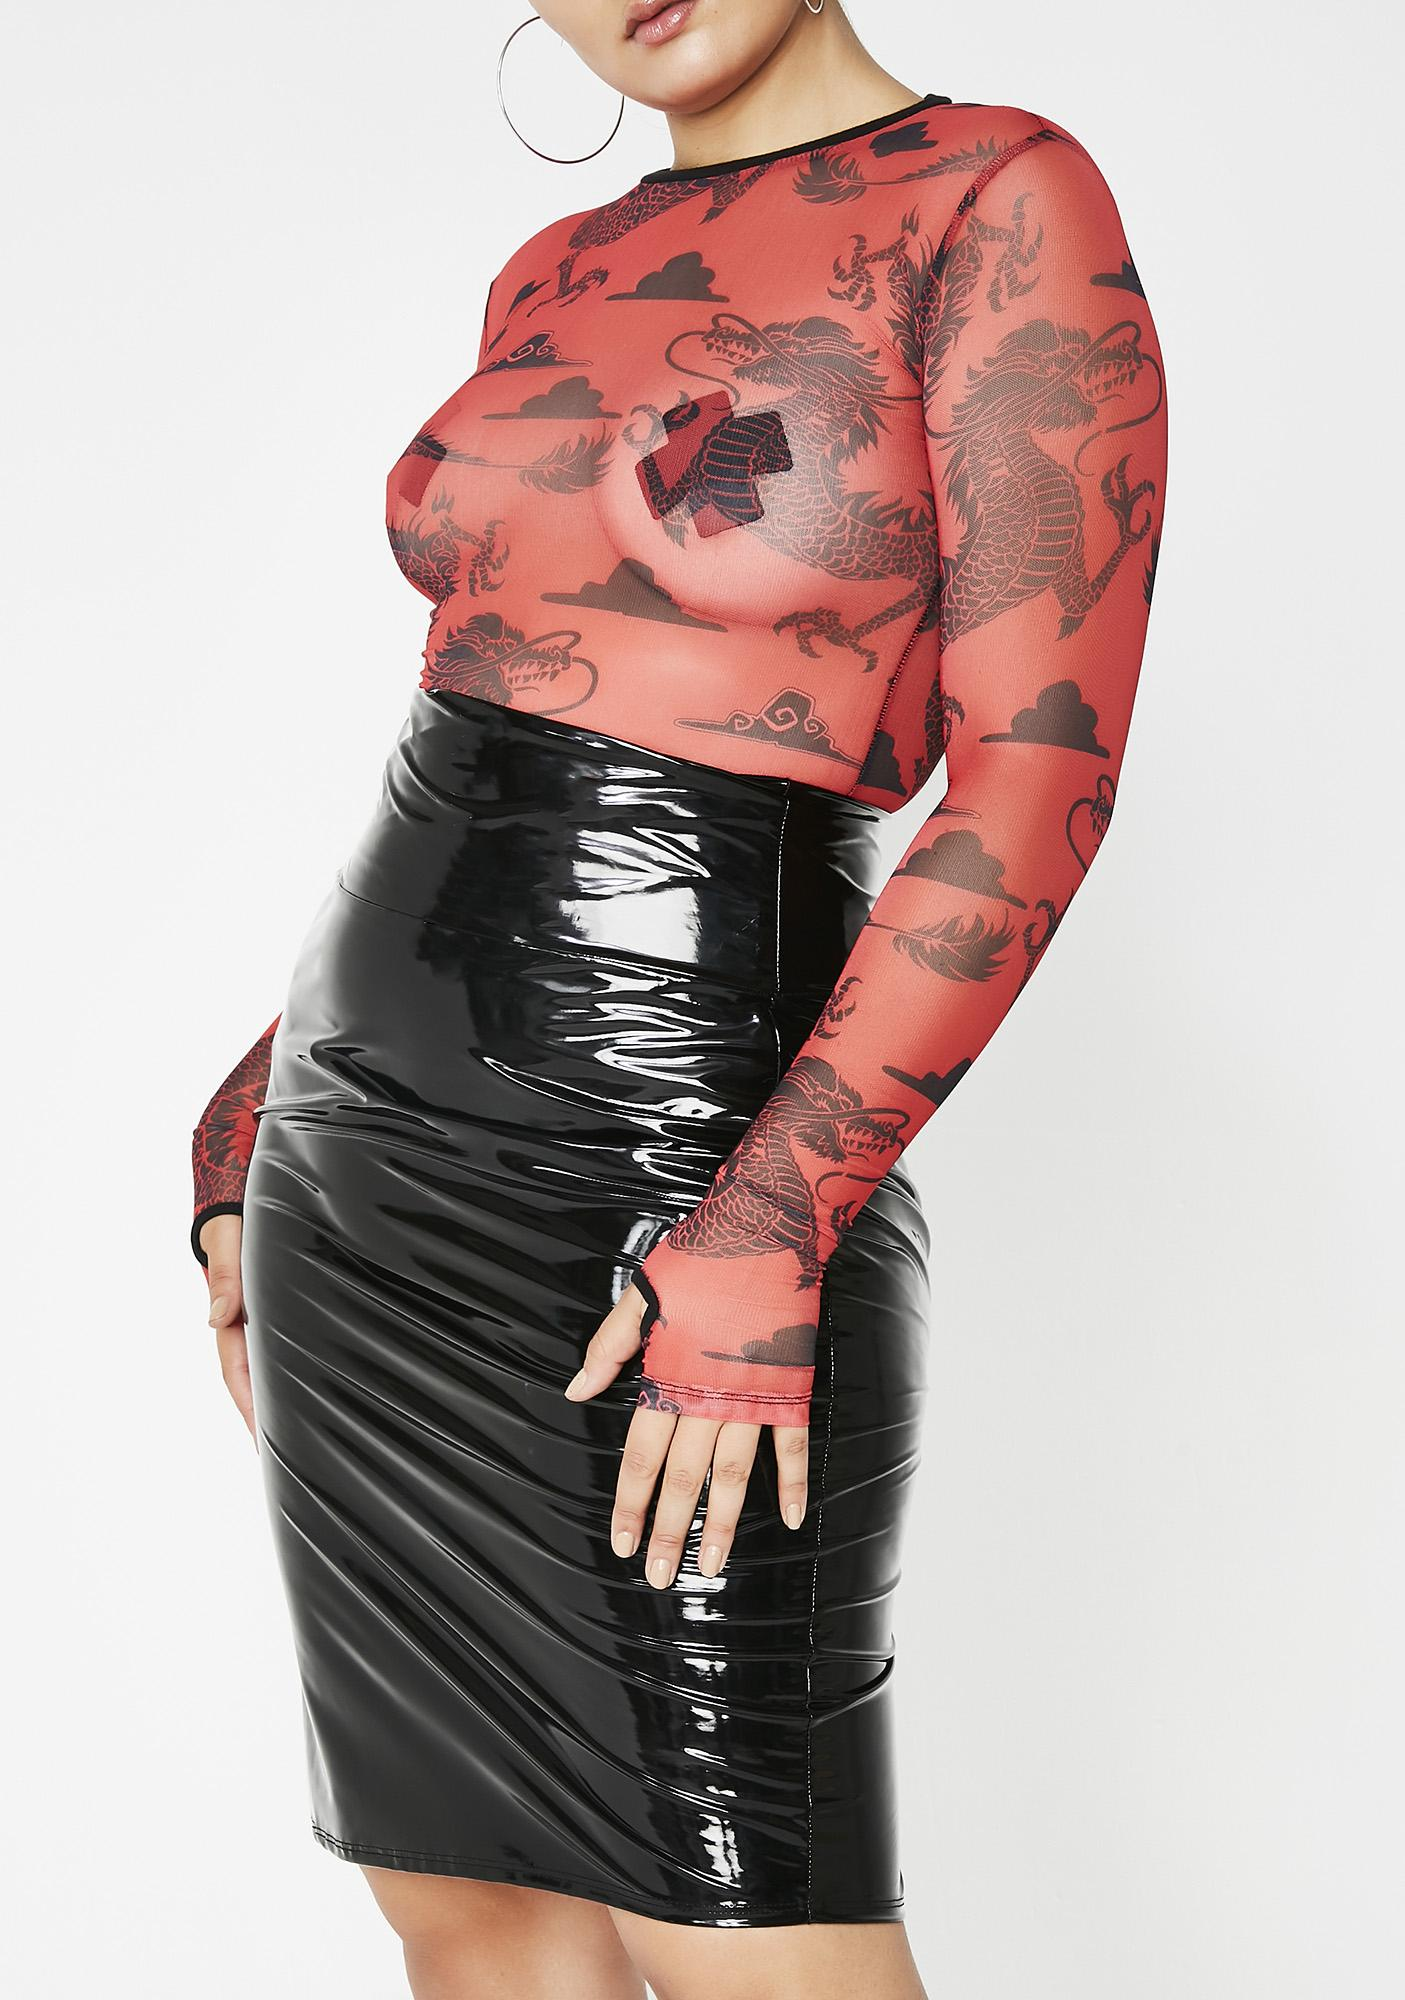 e3d4a72a1 Wicked Never Loved Us PVC Pencil Skirt